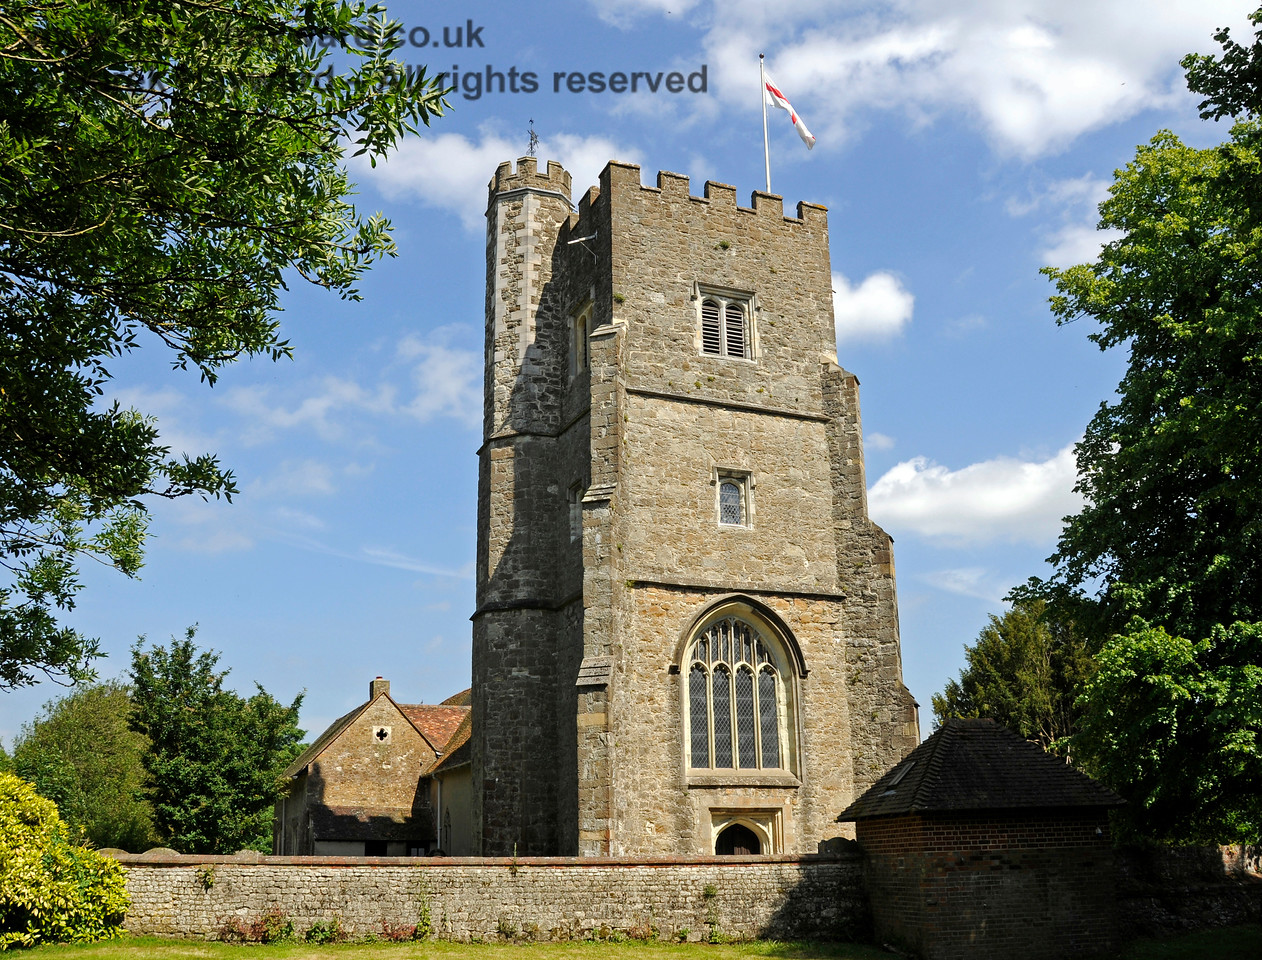 The tower of St Botolphs Church, Chevening.  On the left side of the tower is a turret containing the stairs.  19.06.2015  12894